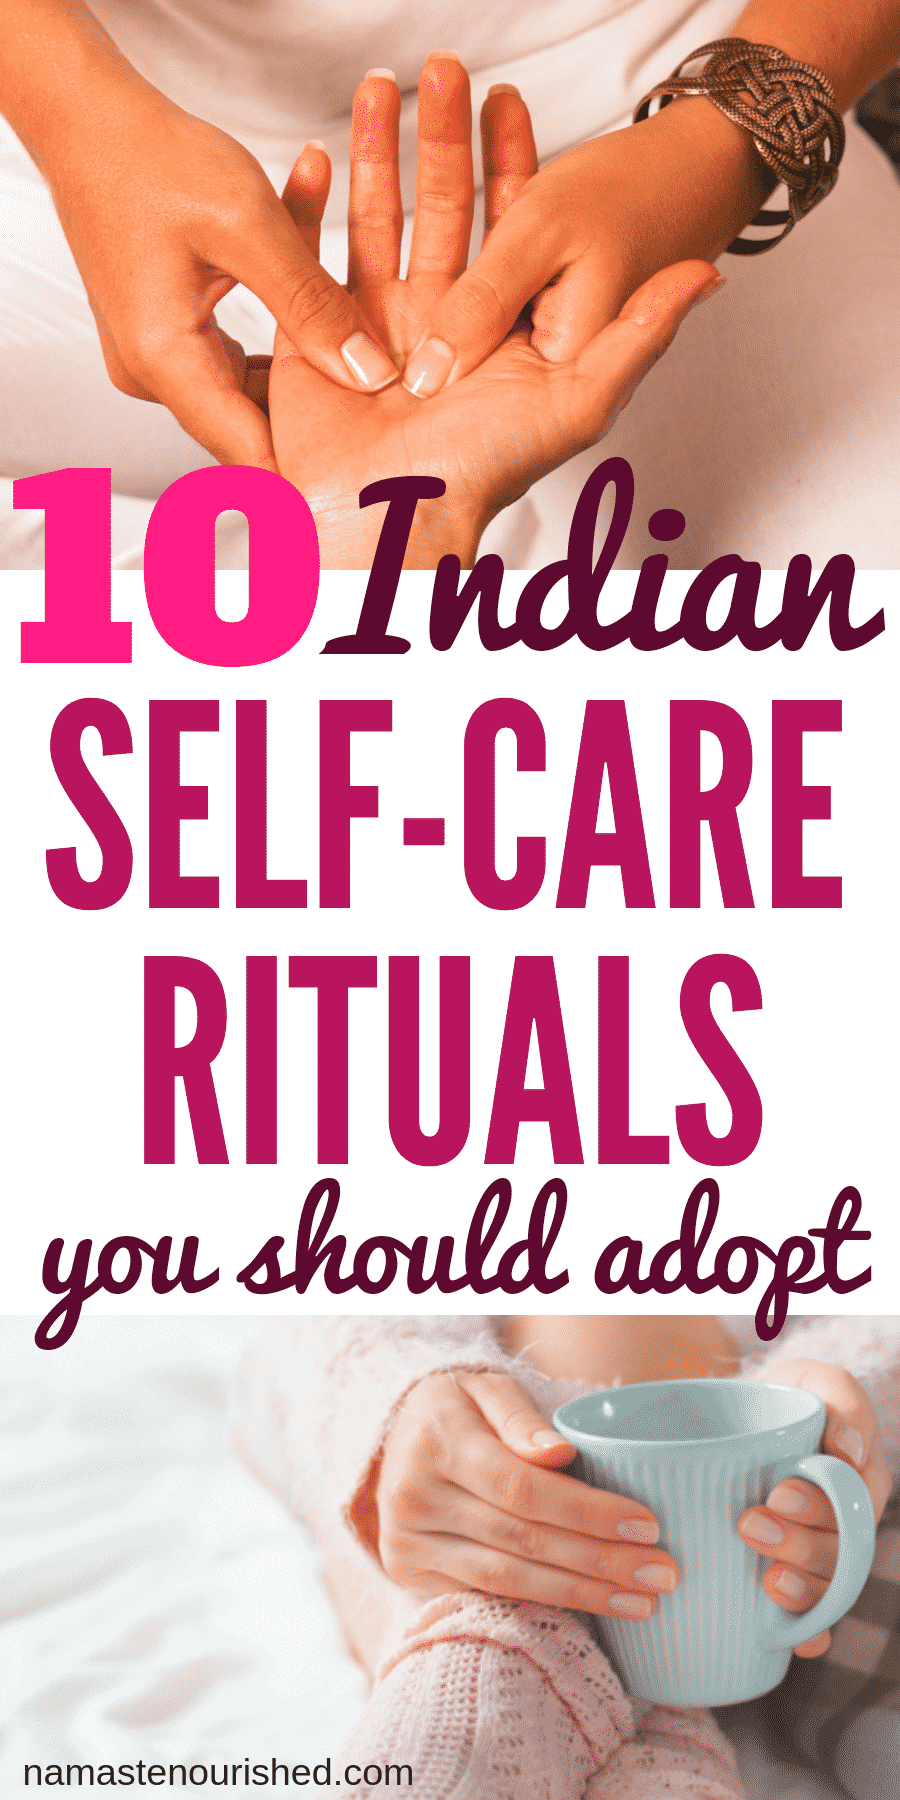 Self care rituals are an important part of Ayurveda. Click through to learn about 10 self care rituals that you should adopt to improve your health and wellness == srcset=